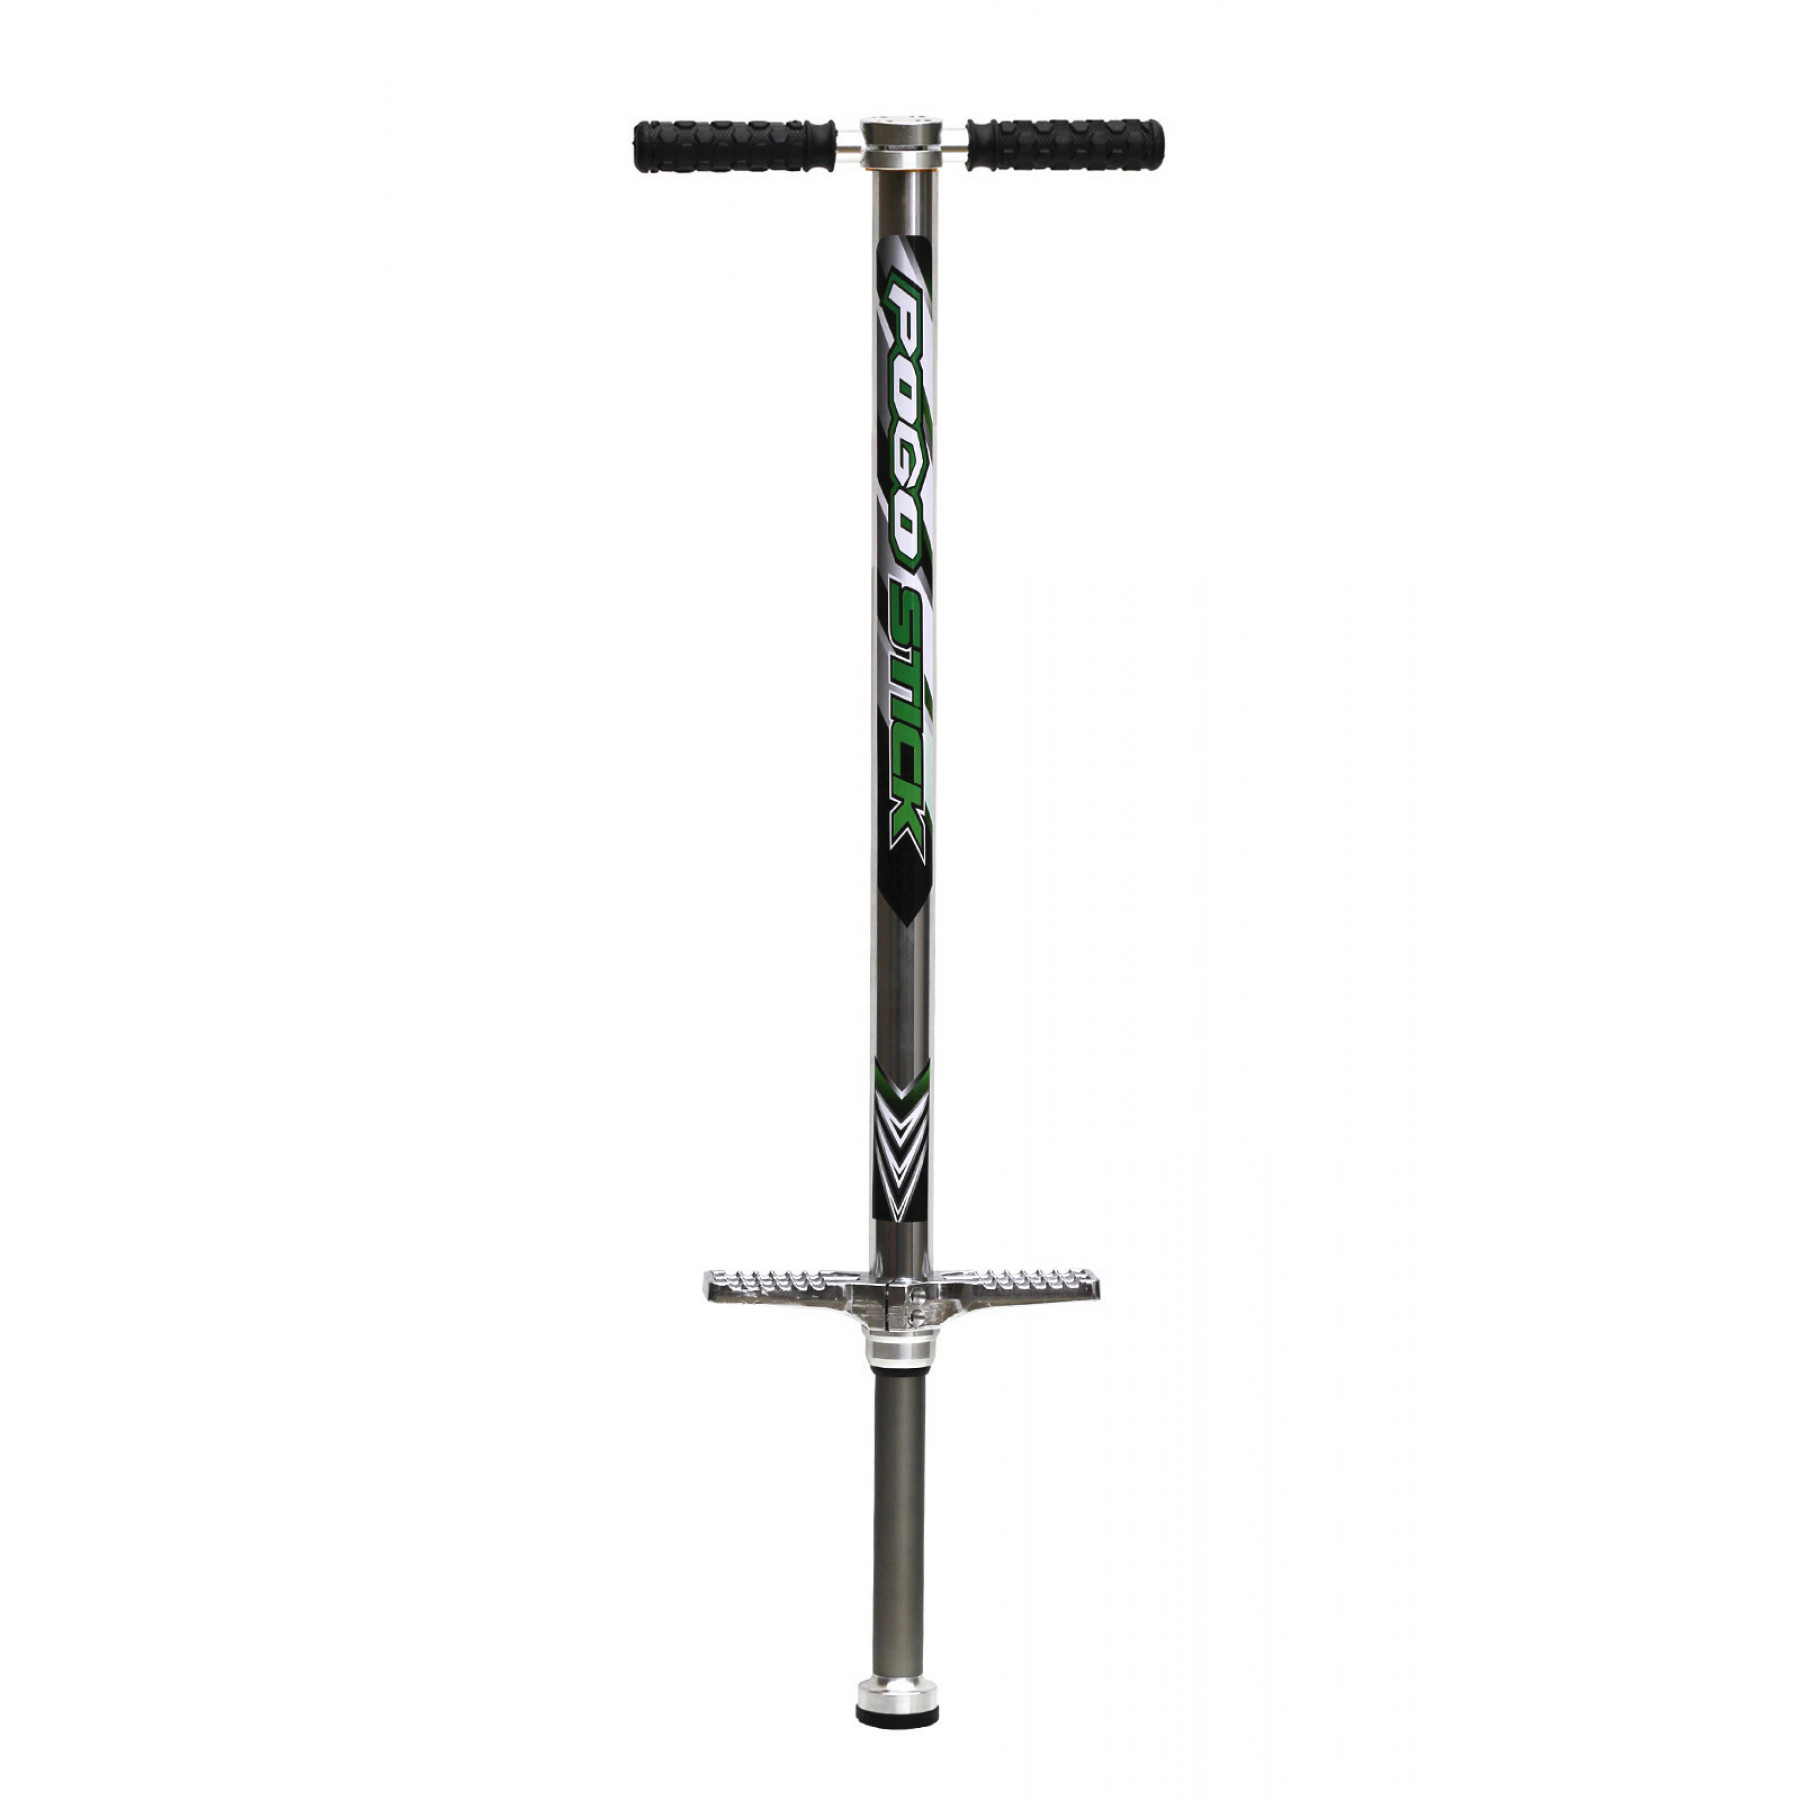 Xtreme AIR Ultimate Pro Pogo Stick Small Green